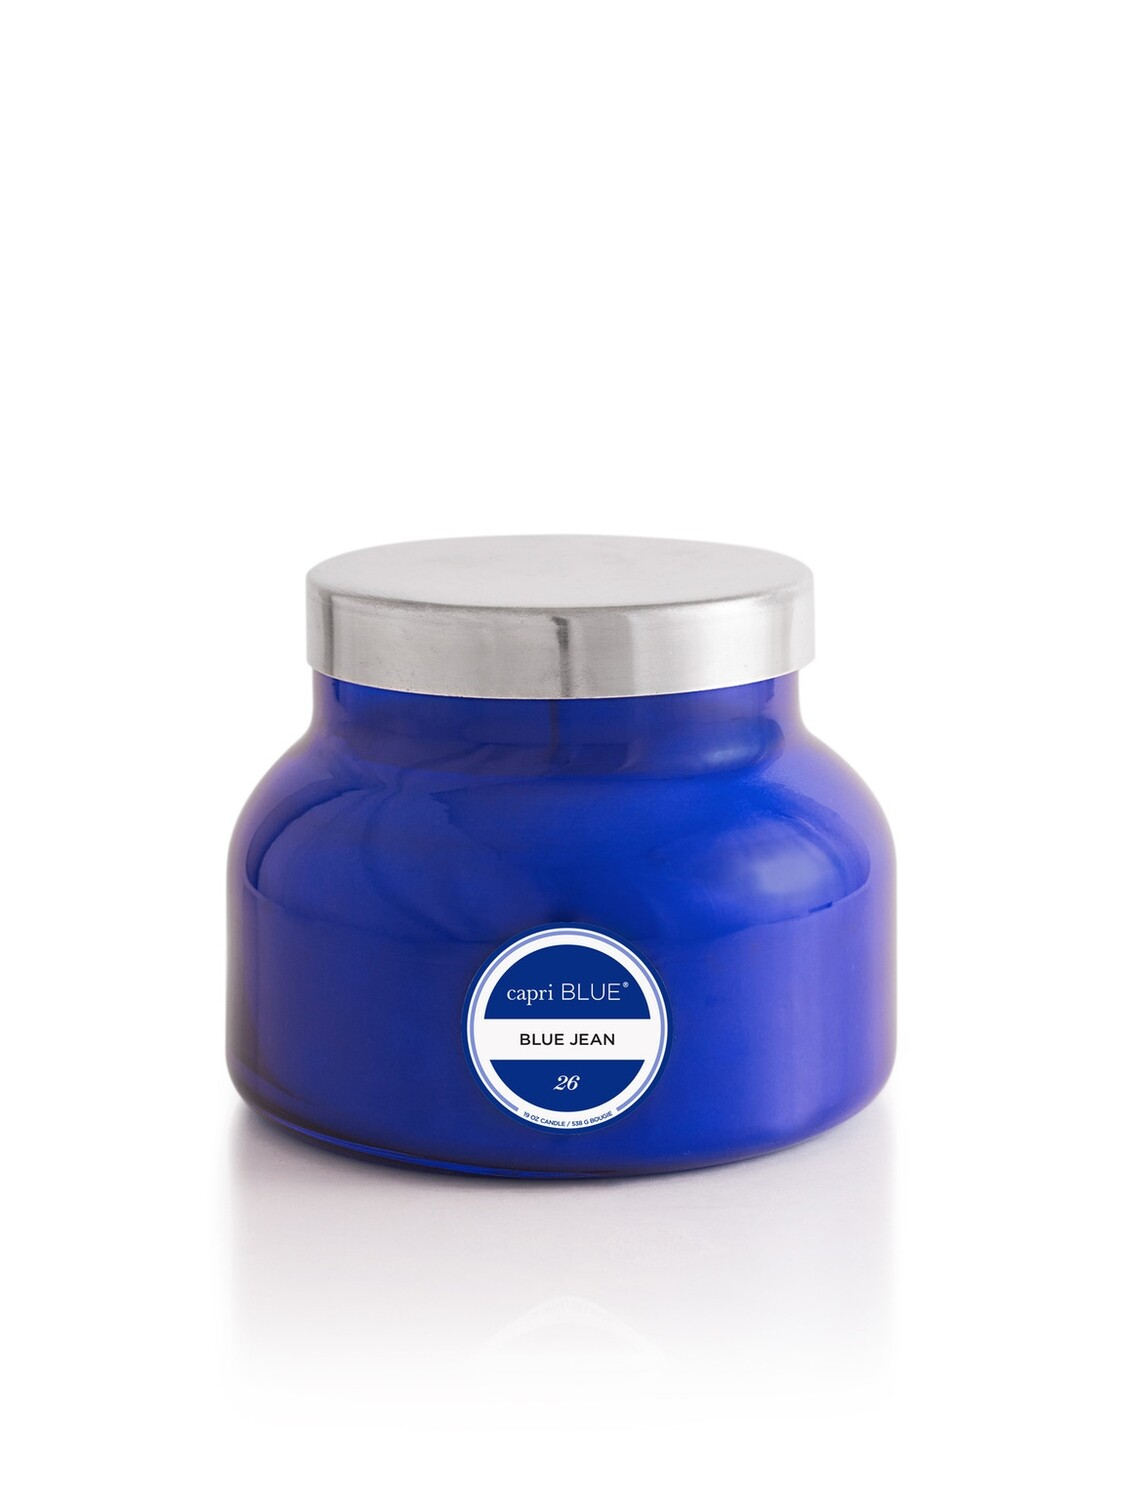 Blue Jean Candle - Capri Blue Signature Jar 19oz